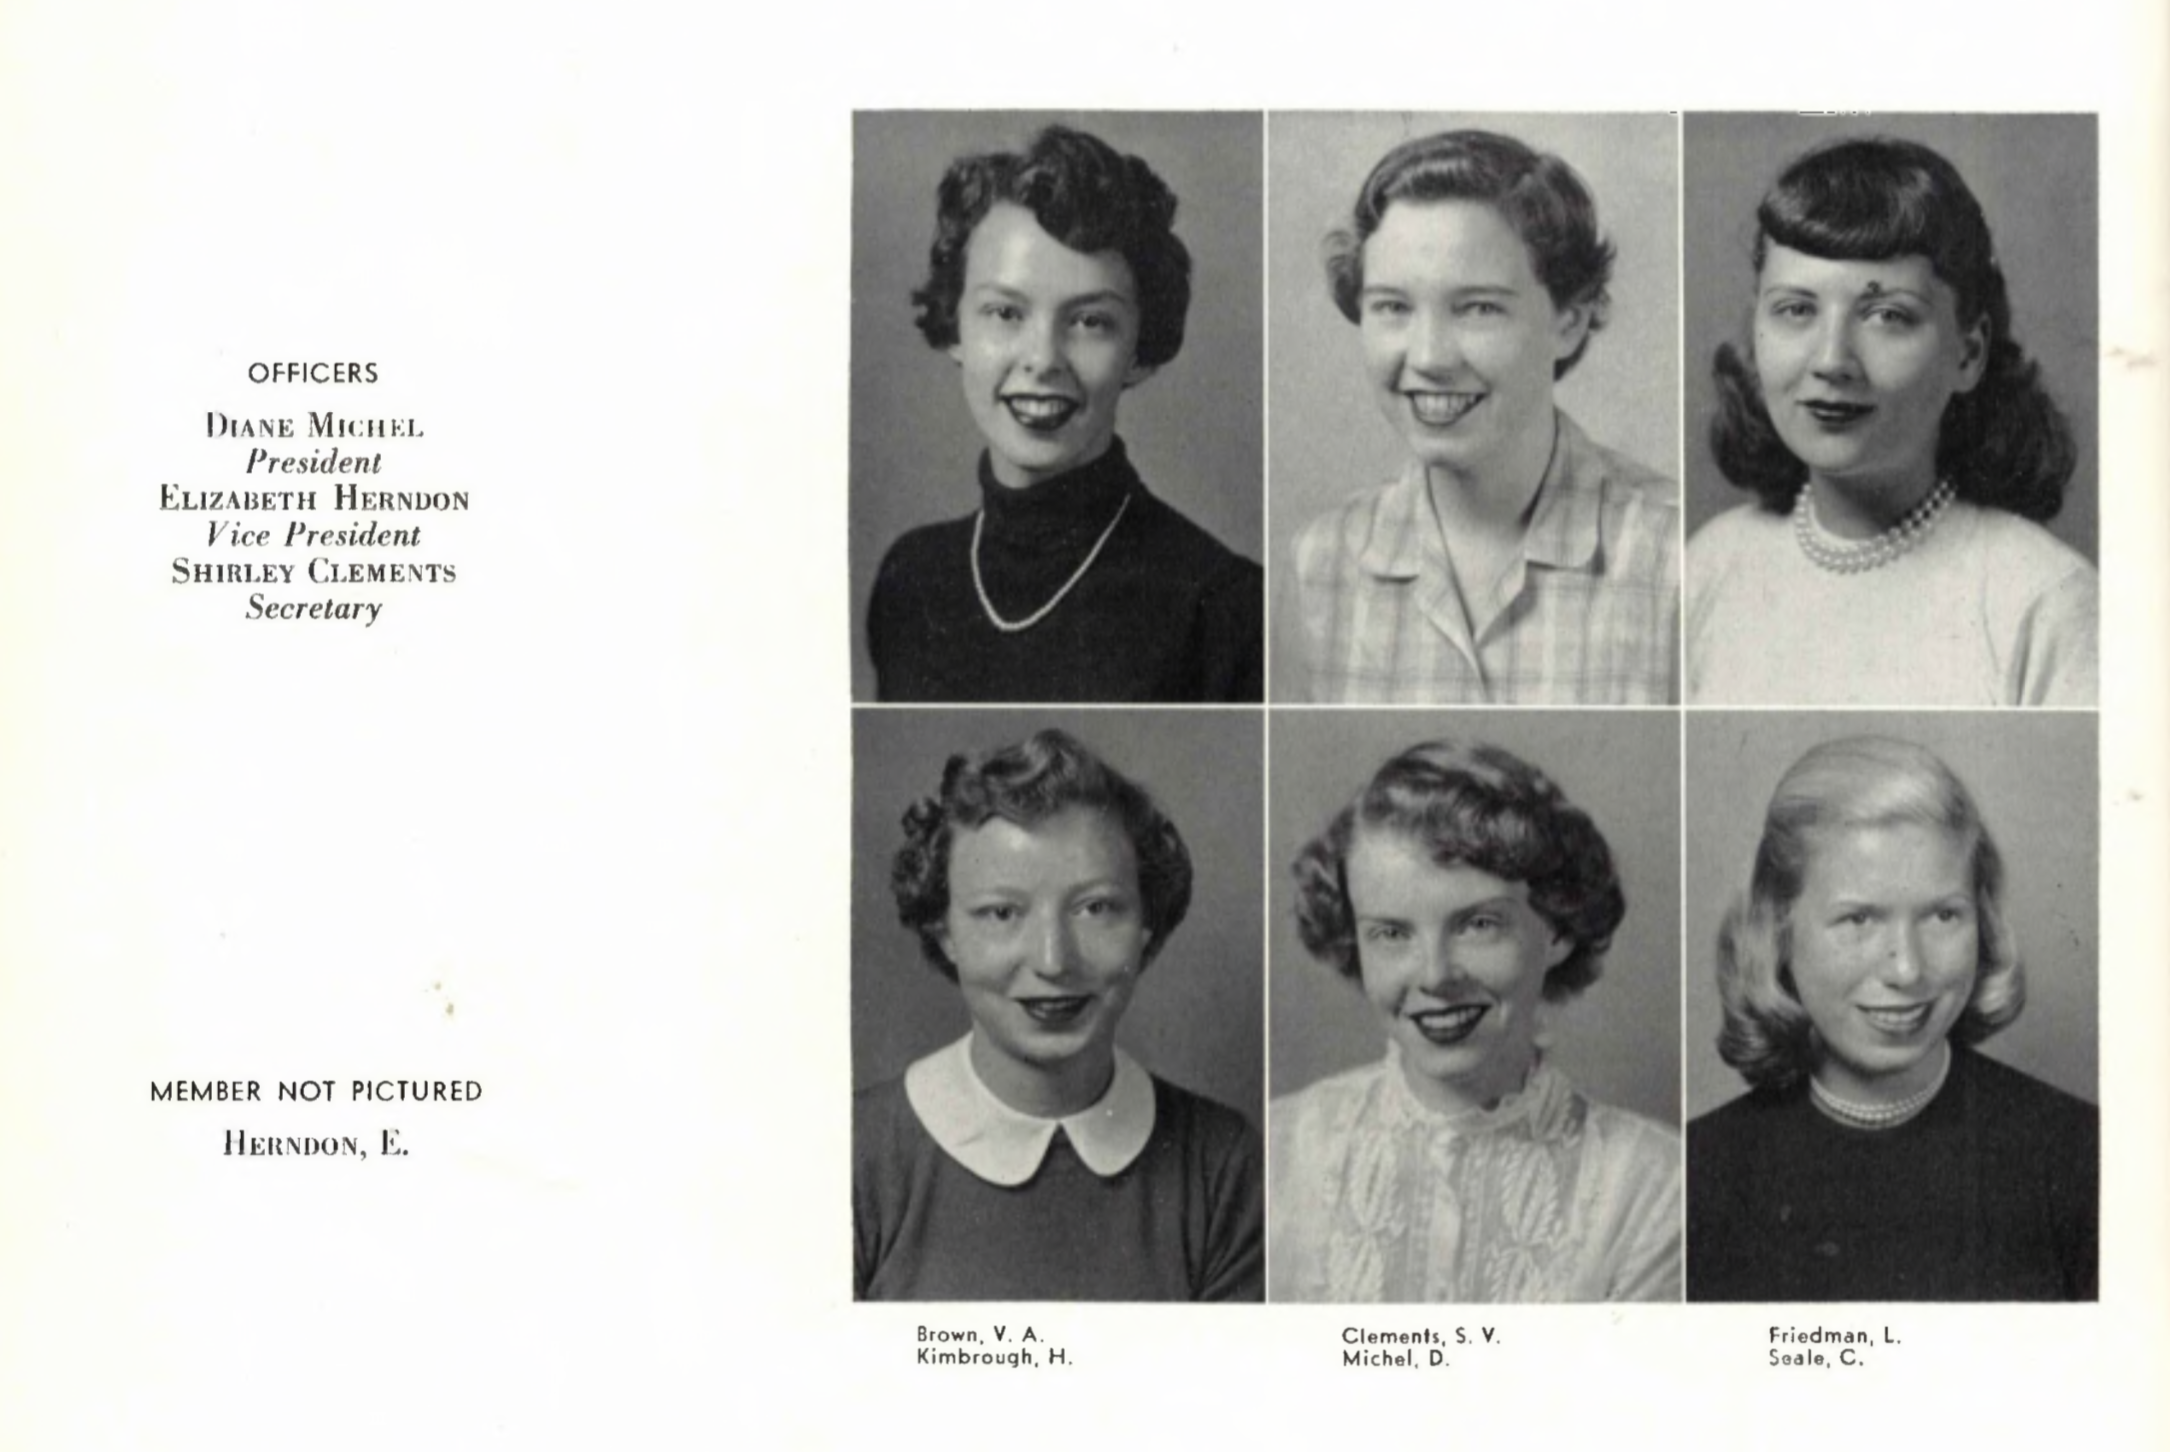 The founding members of Alpha Xi Delta in 1954.